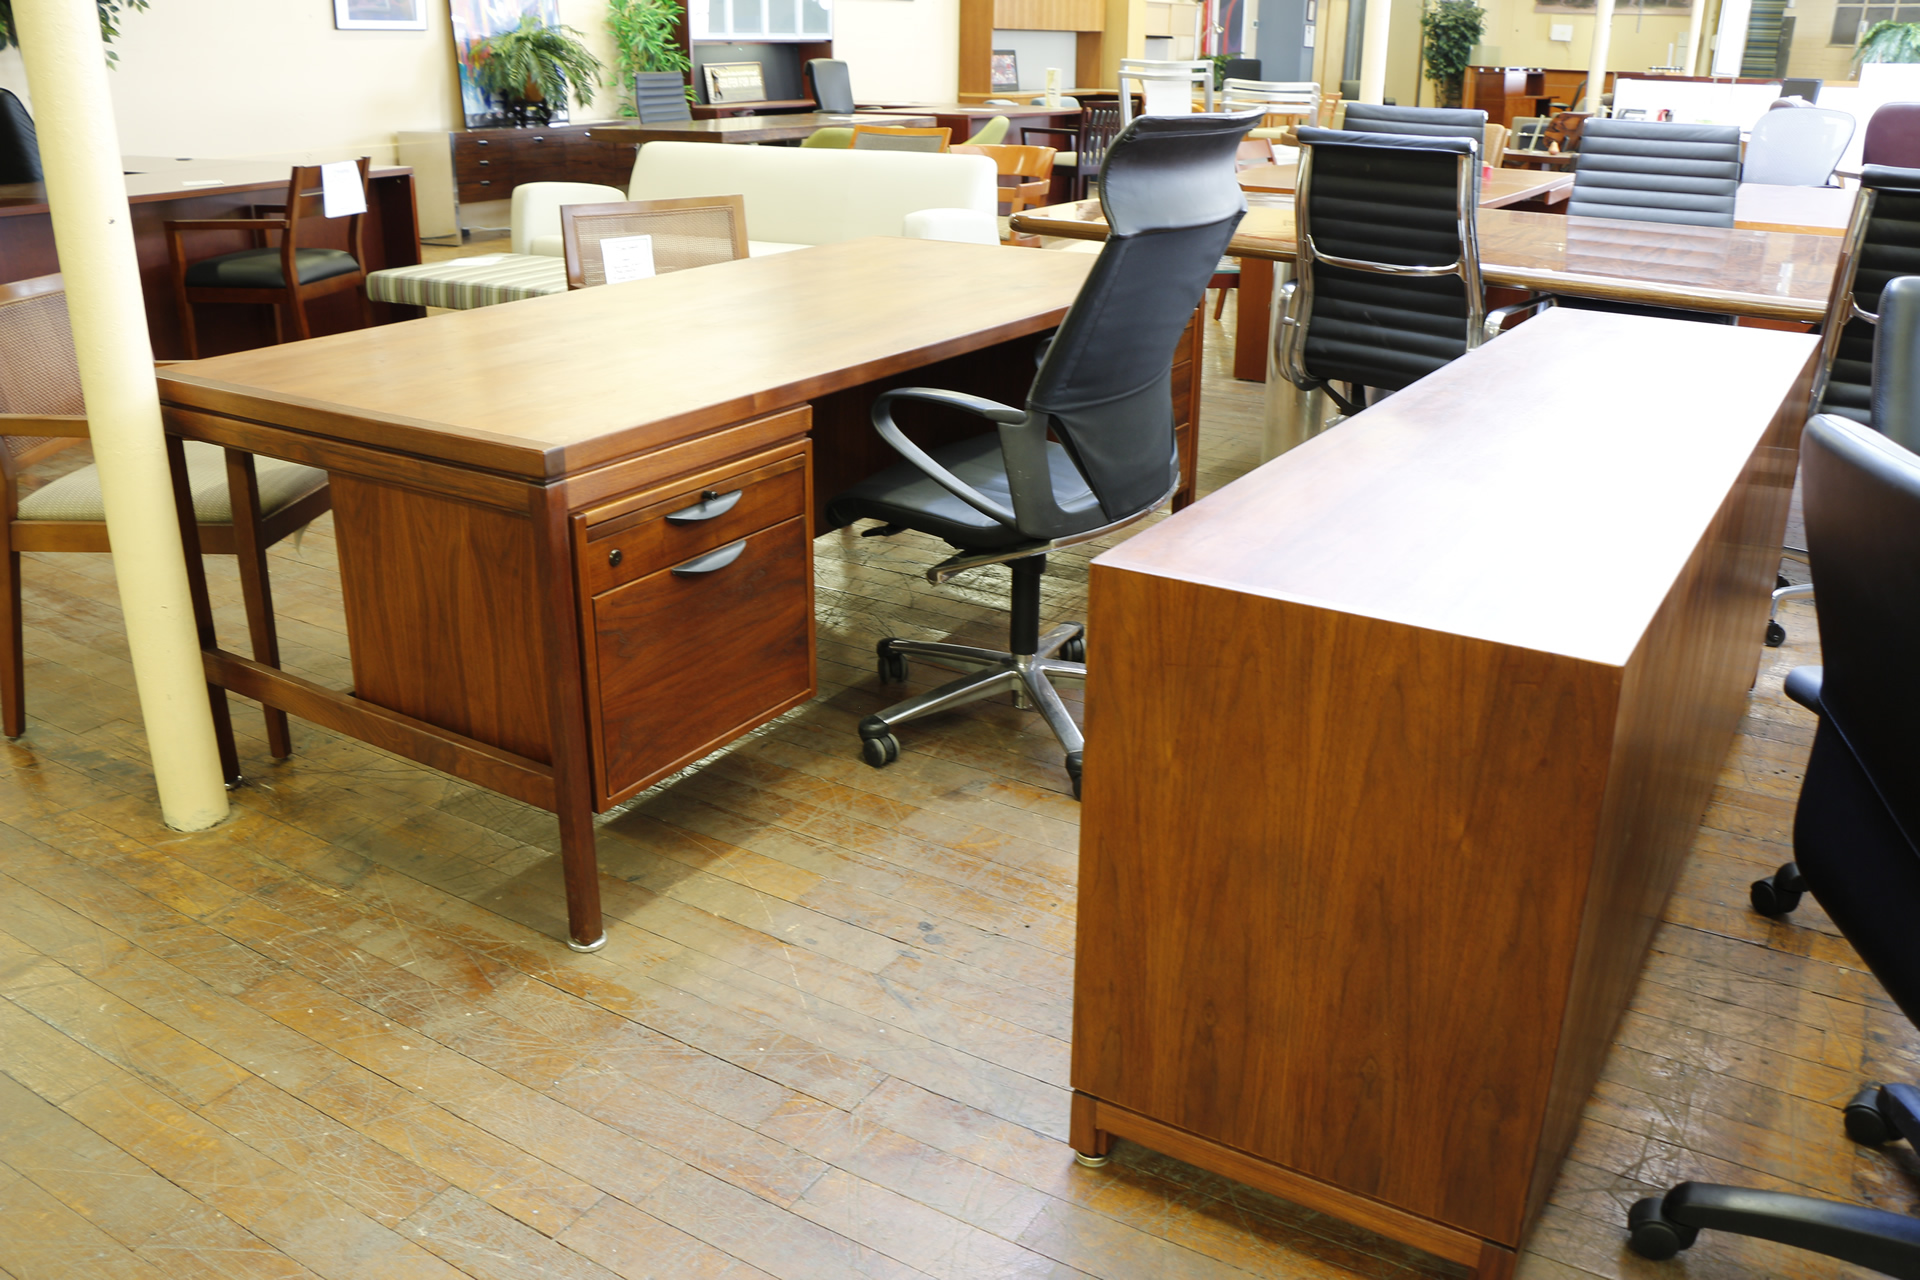 peartreeofficefurniture_peartreeofficefurniture_mg_4381.jpg